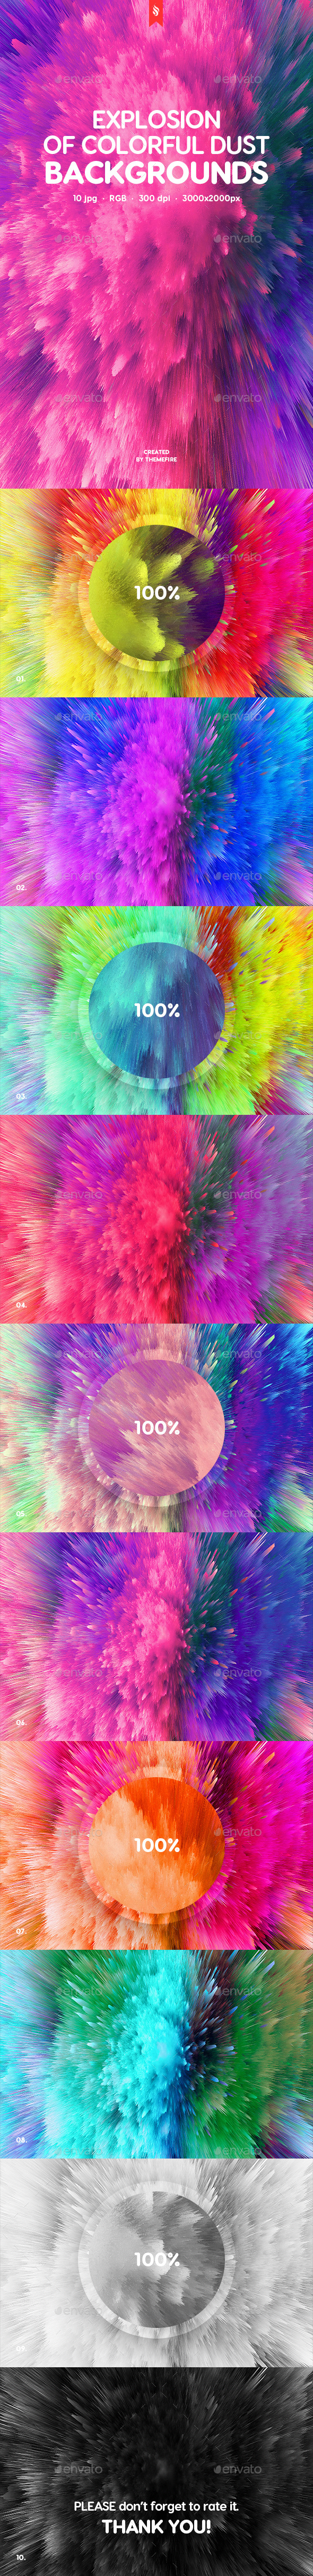 Explosion of Colorful Dust Backgrounds - Abstract Backgrounds